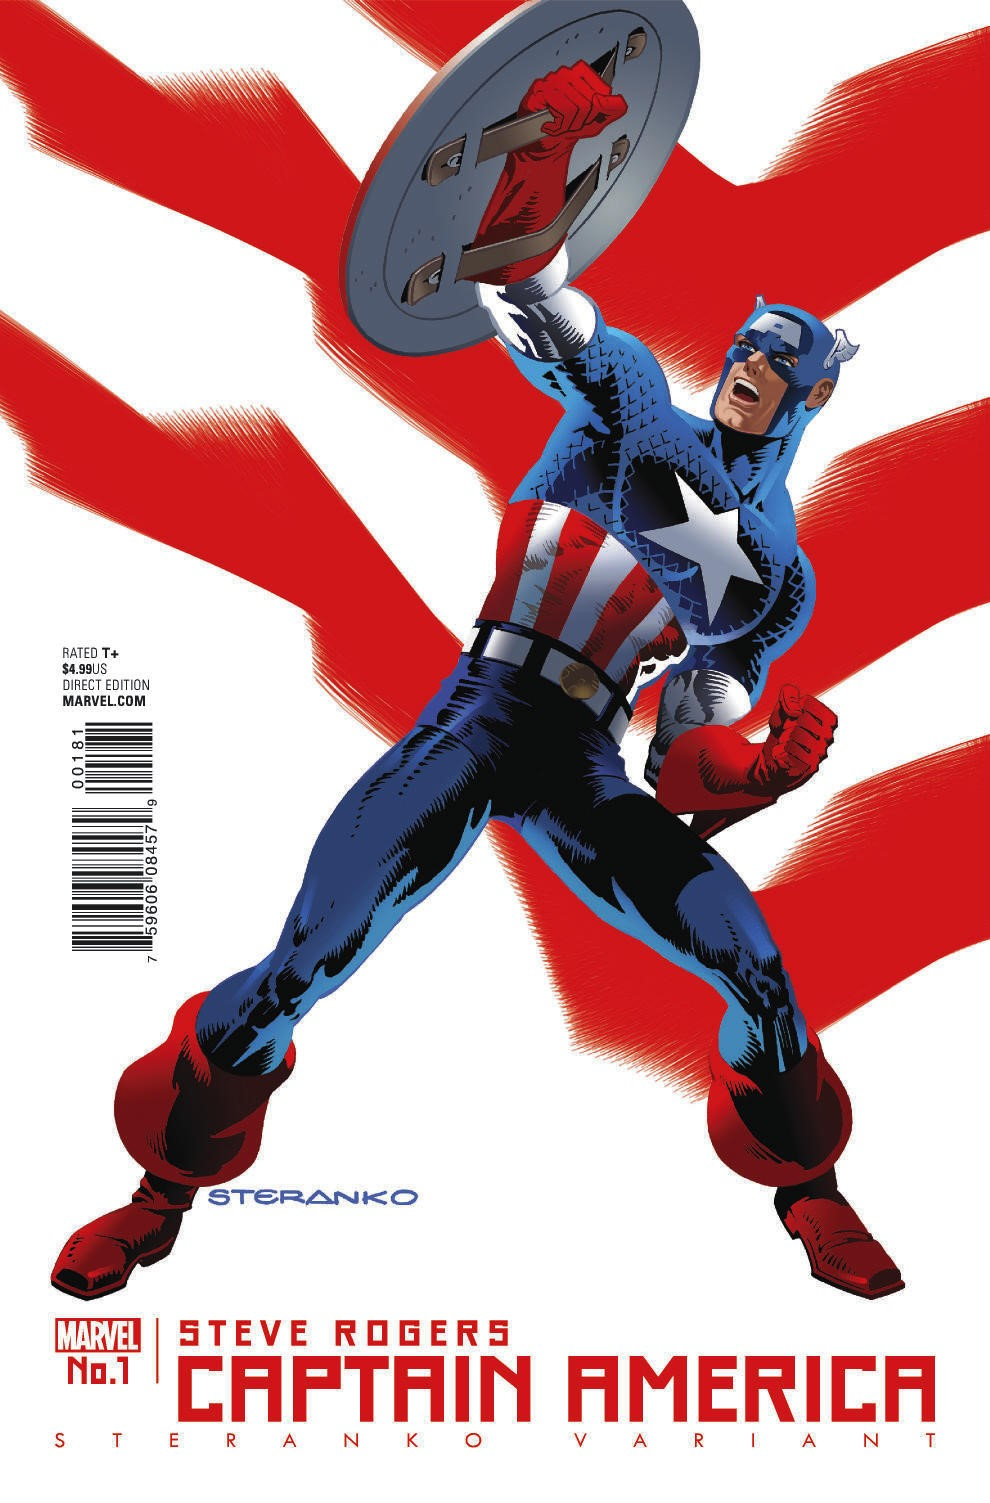 CAPTAIN AMERICA: STEVE ROGERS #1 Returns to Action this May!